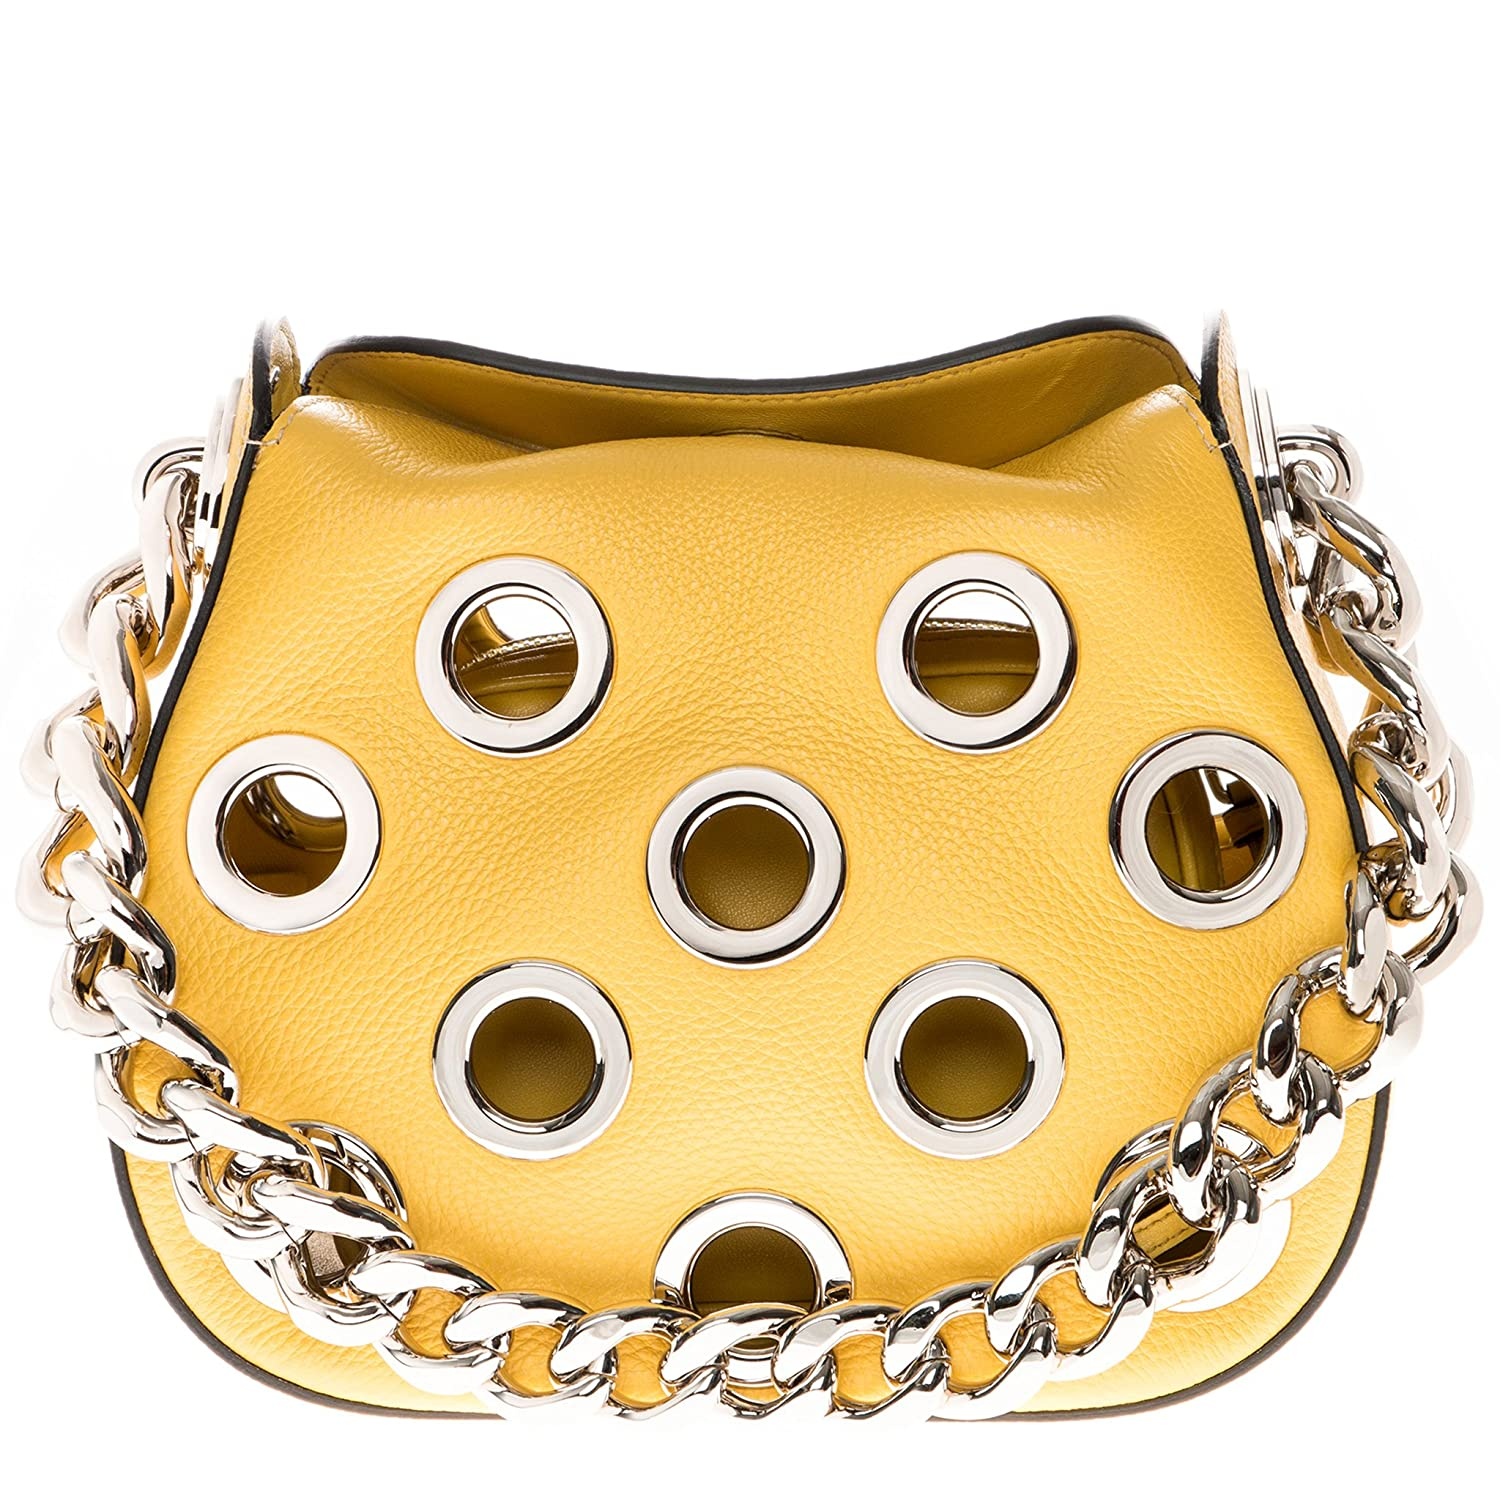 b90d192ab4 Amazon.com  Prada Women s Top Chain Handle Grommet Rounded Bag Yellow   Clothing